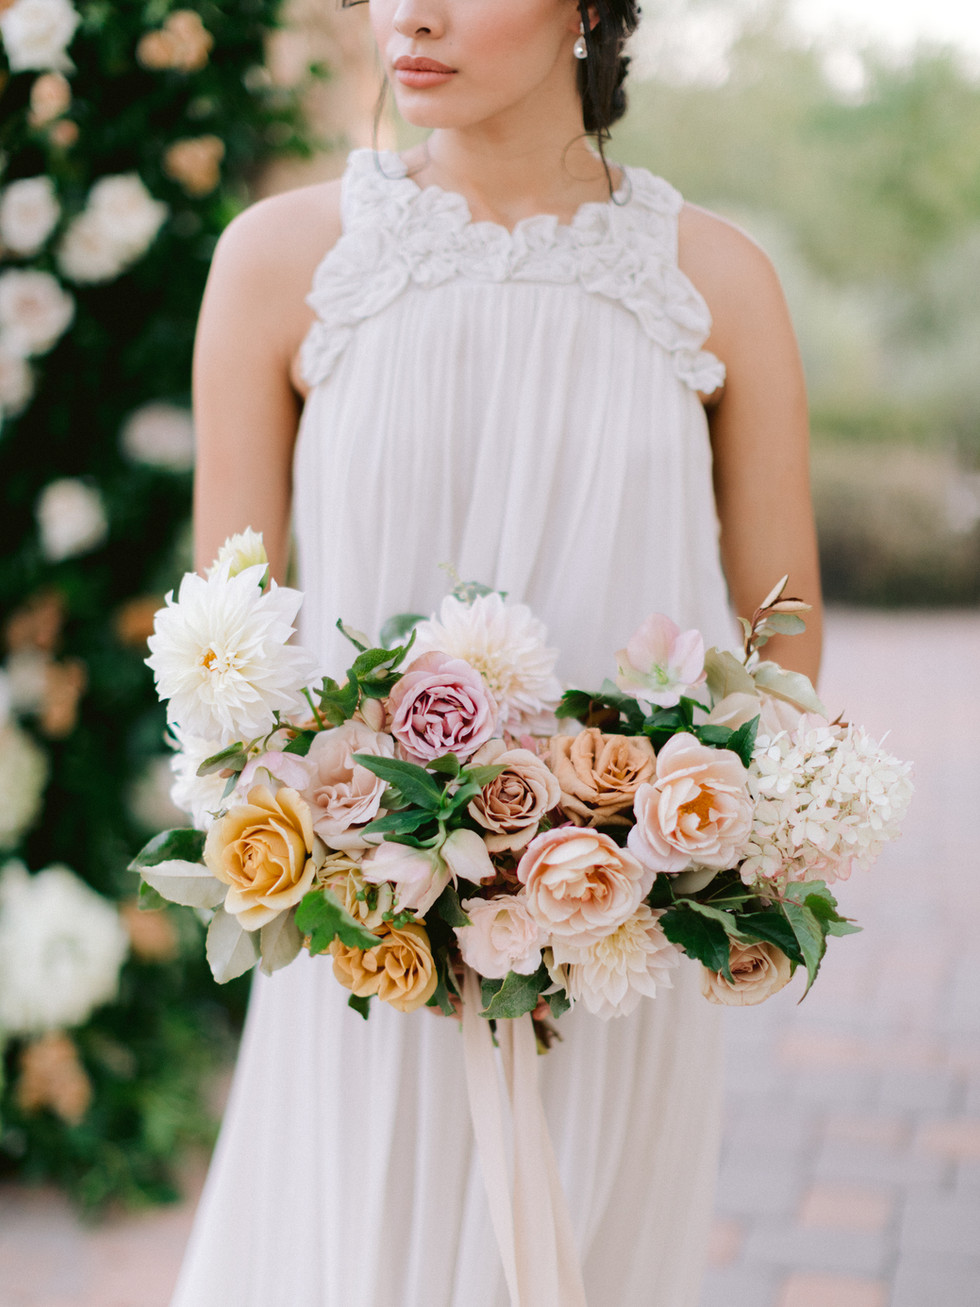 Dusty rose and taupe bridal bouquet, wrapped with silk ribbons. Photo: Susie and Will